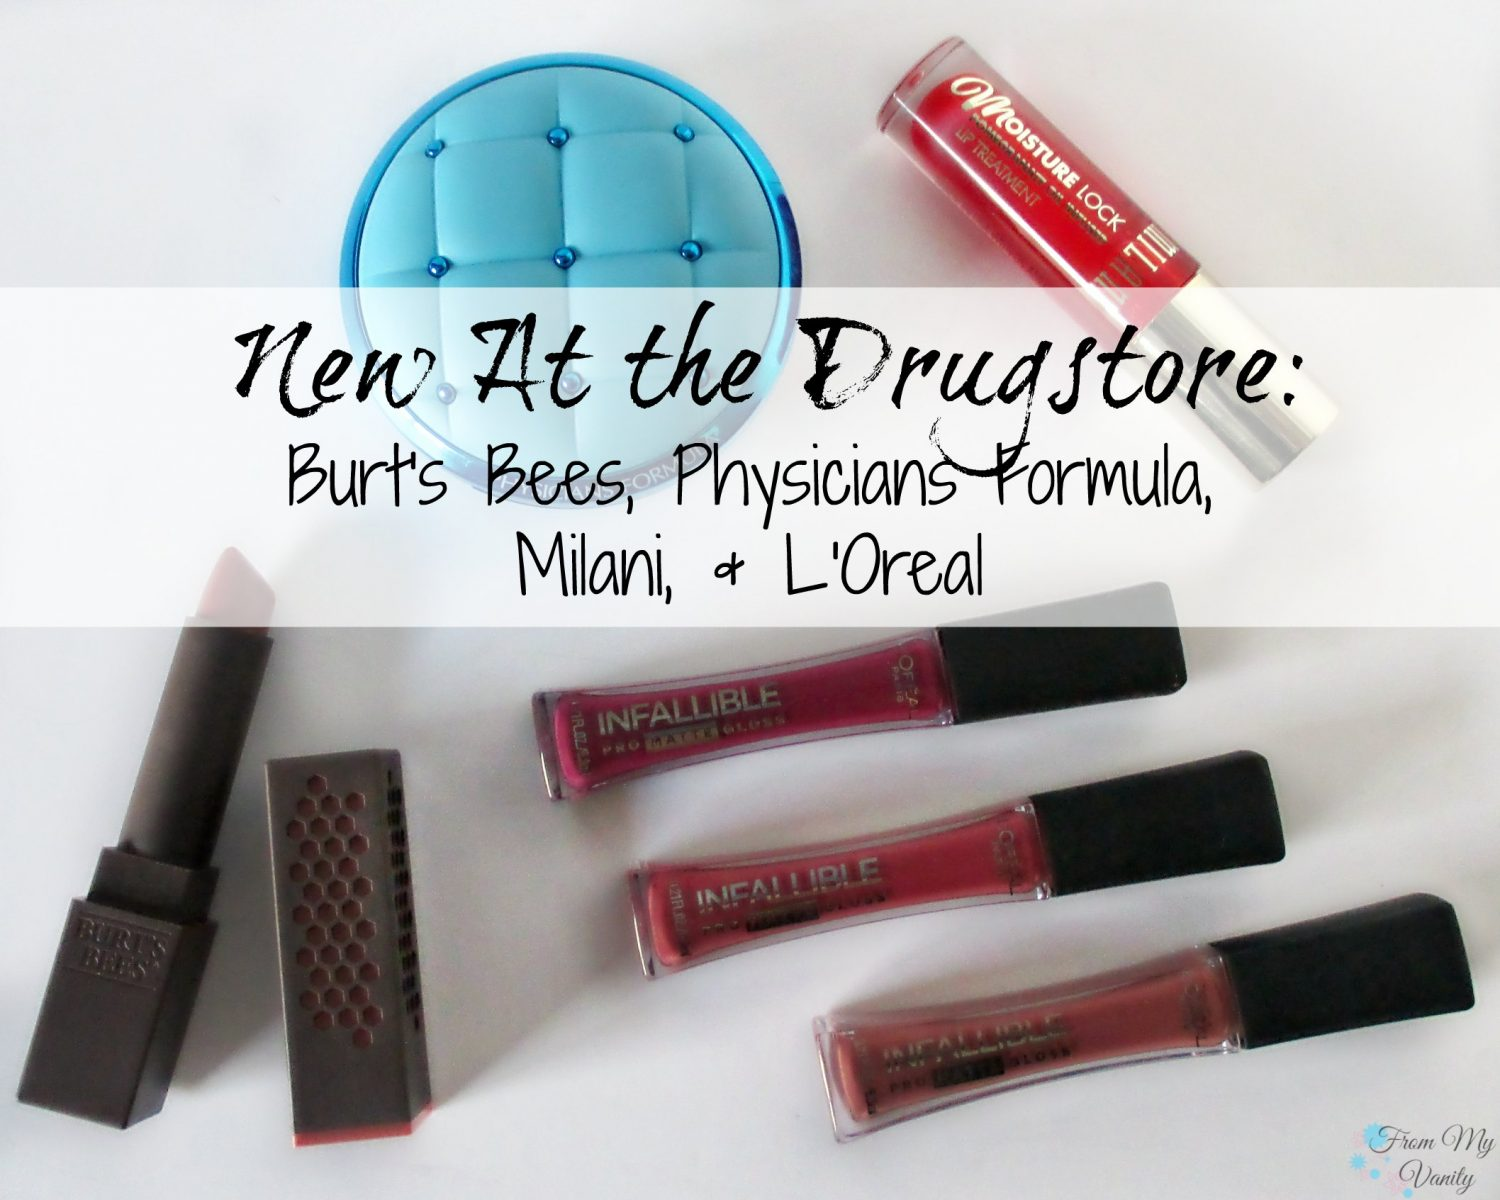 New at the Drugstore: Burts Bees, Physicians Formula, Milani, & Loreal // Mini reviews // FromMyVanity.com